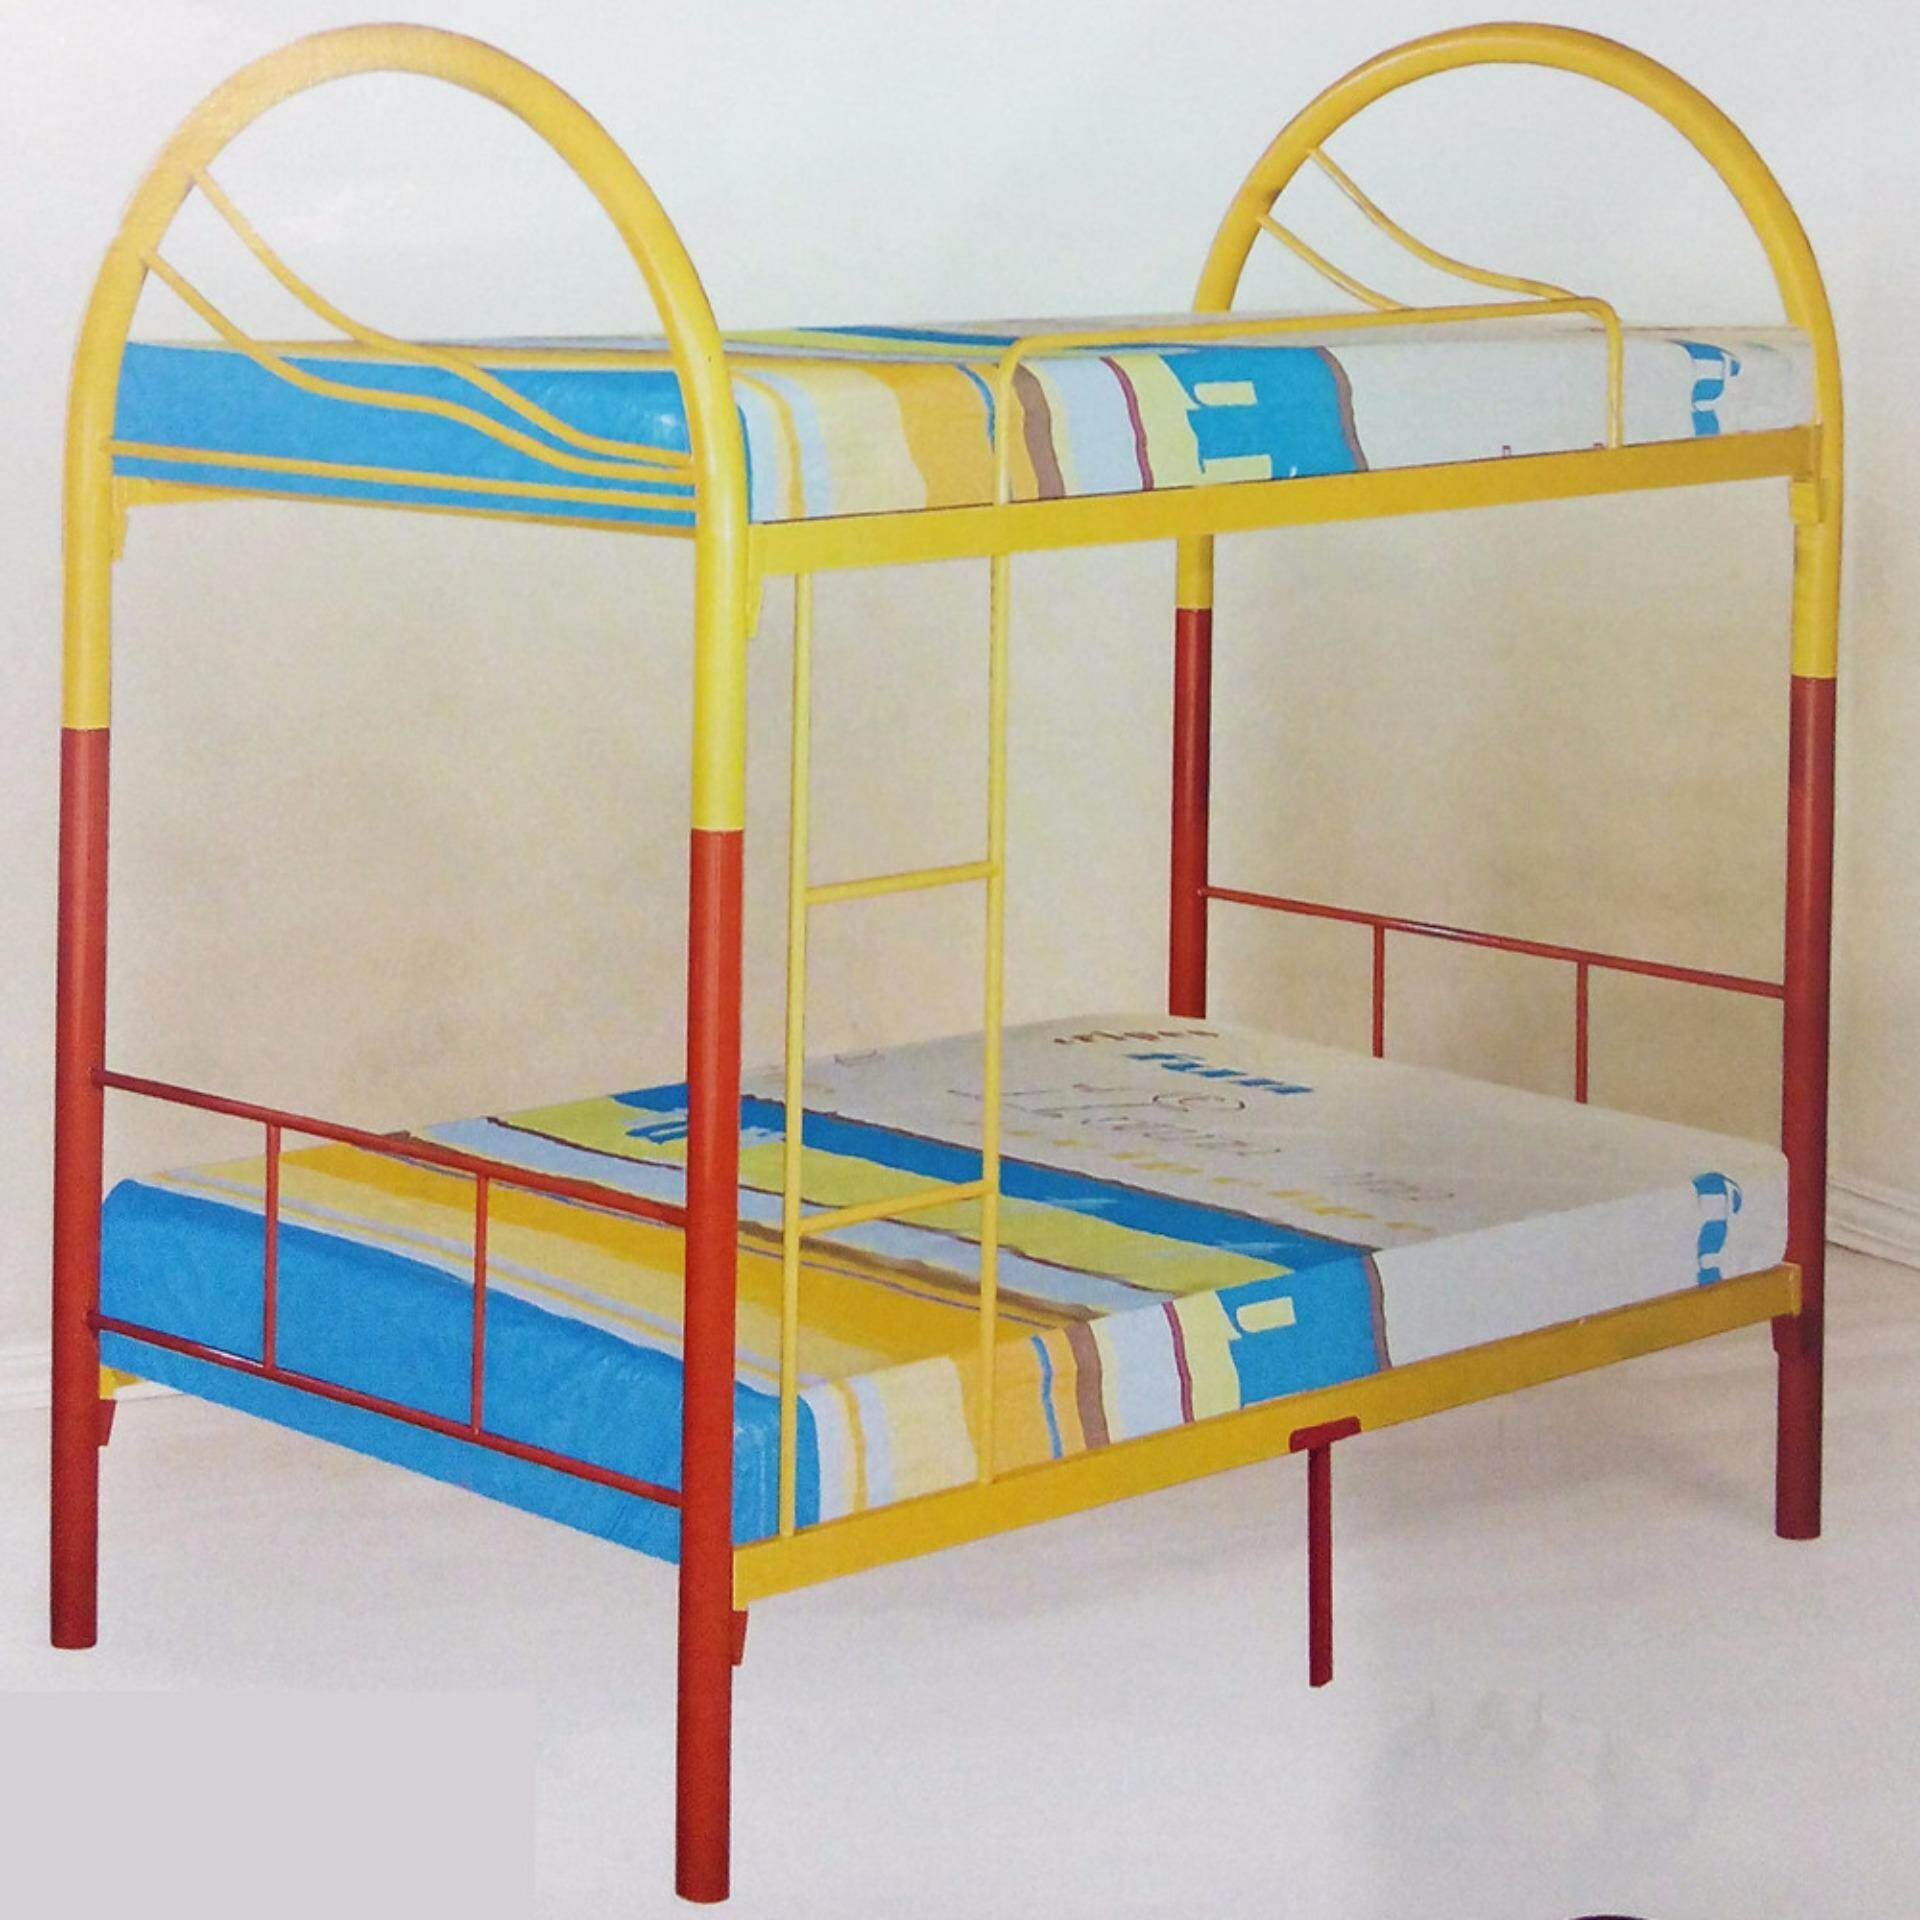 Steel double deck bed - Steel Double Deck Bed 56